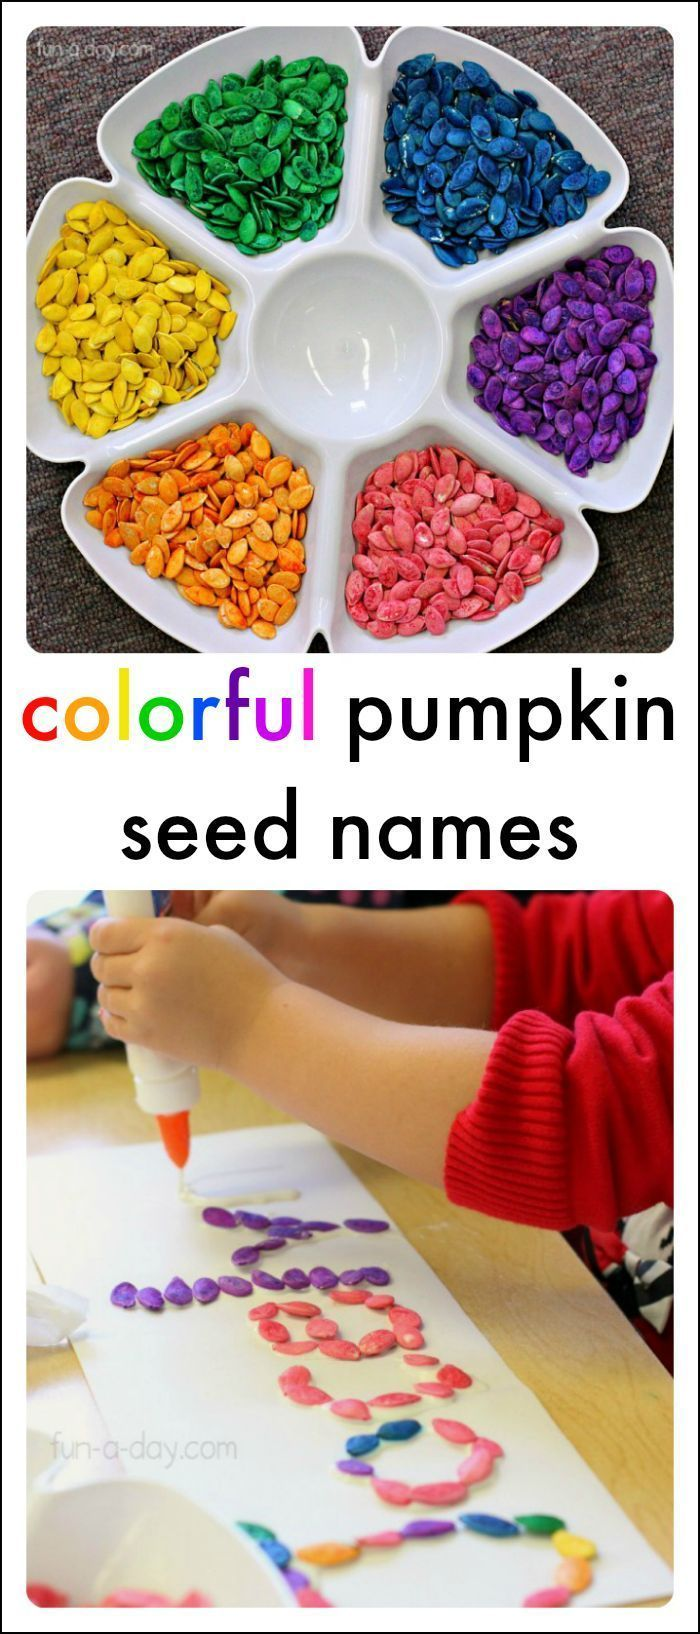 Name Activities with Colorful Pumpkin Seeds